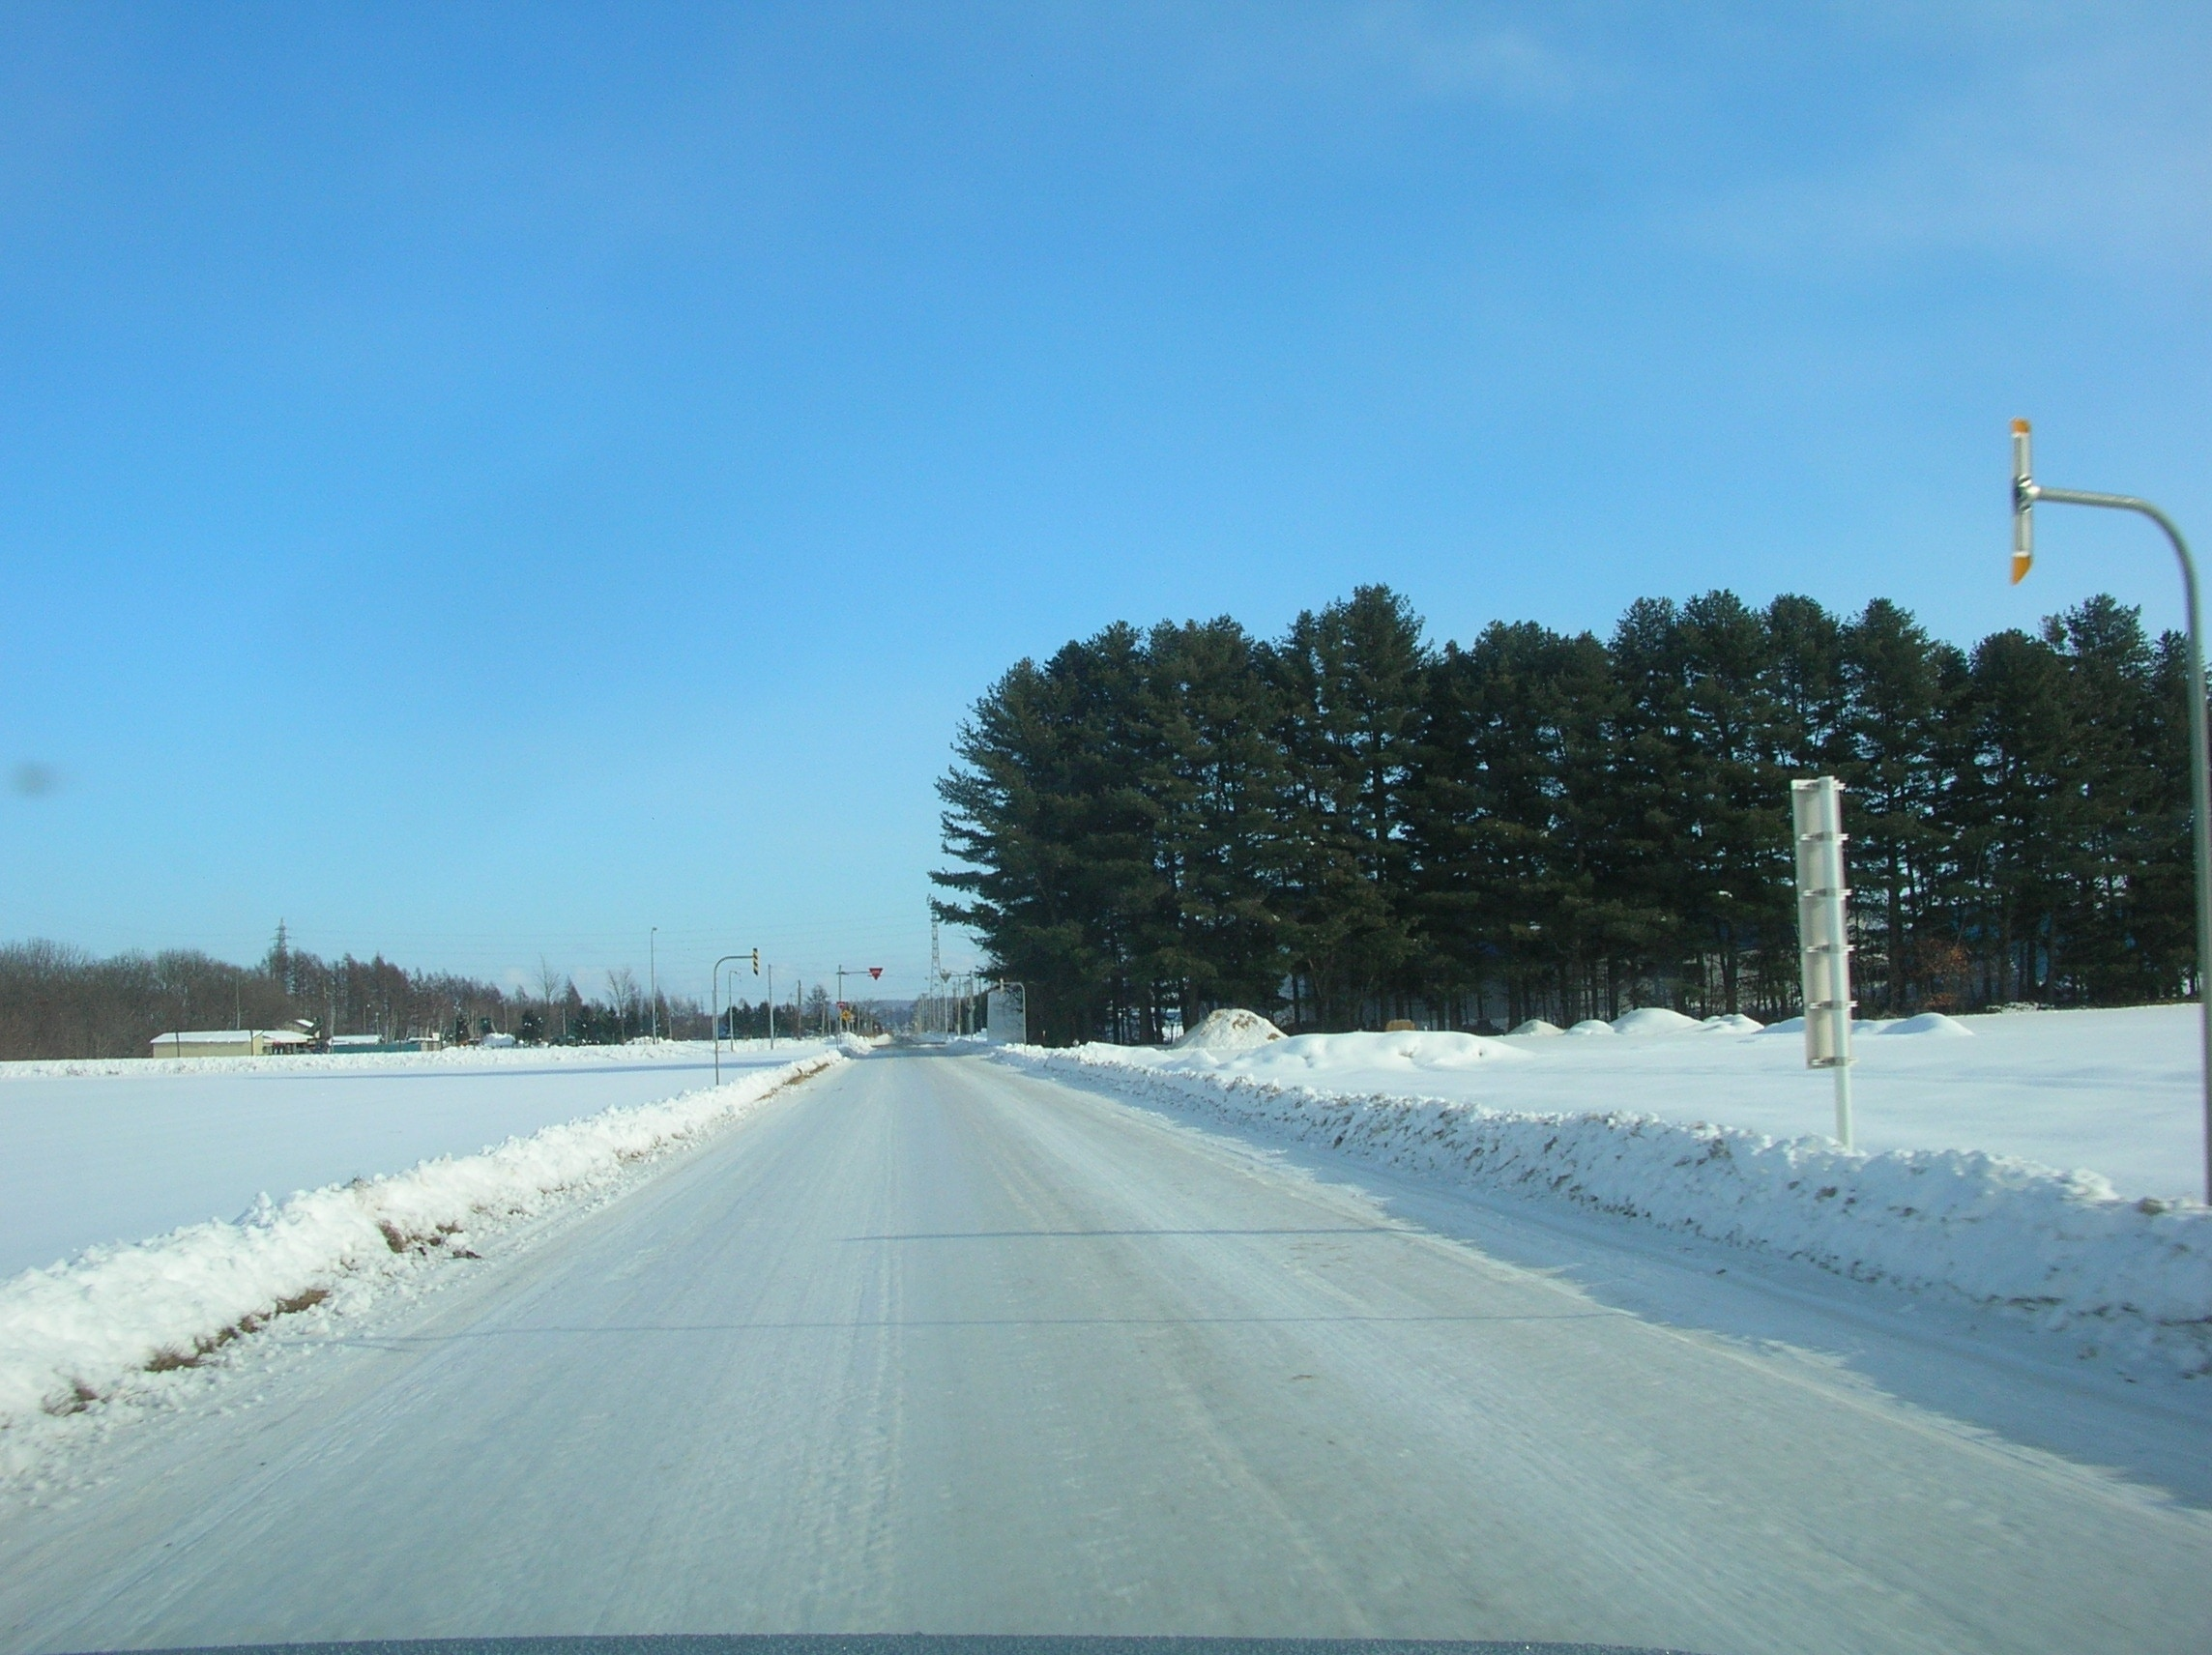 """Photo """"アイスバーン(Icy road)"""" by pakku (Creative Commons Attribution 3.0) / Cropped from original"""